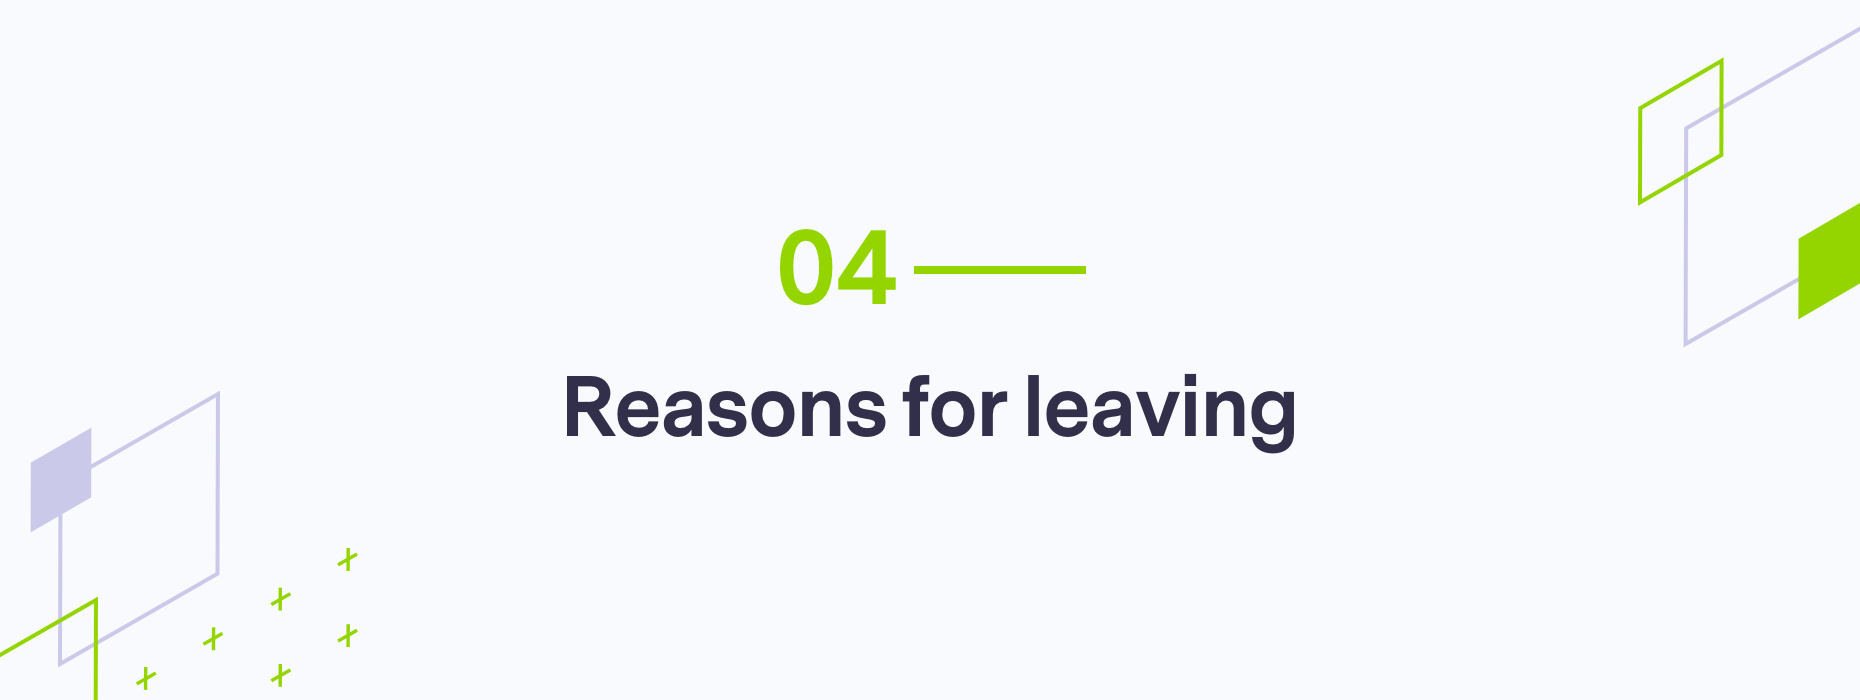 Branded part 4, reasons for leaving graphic